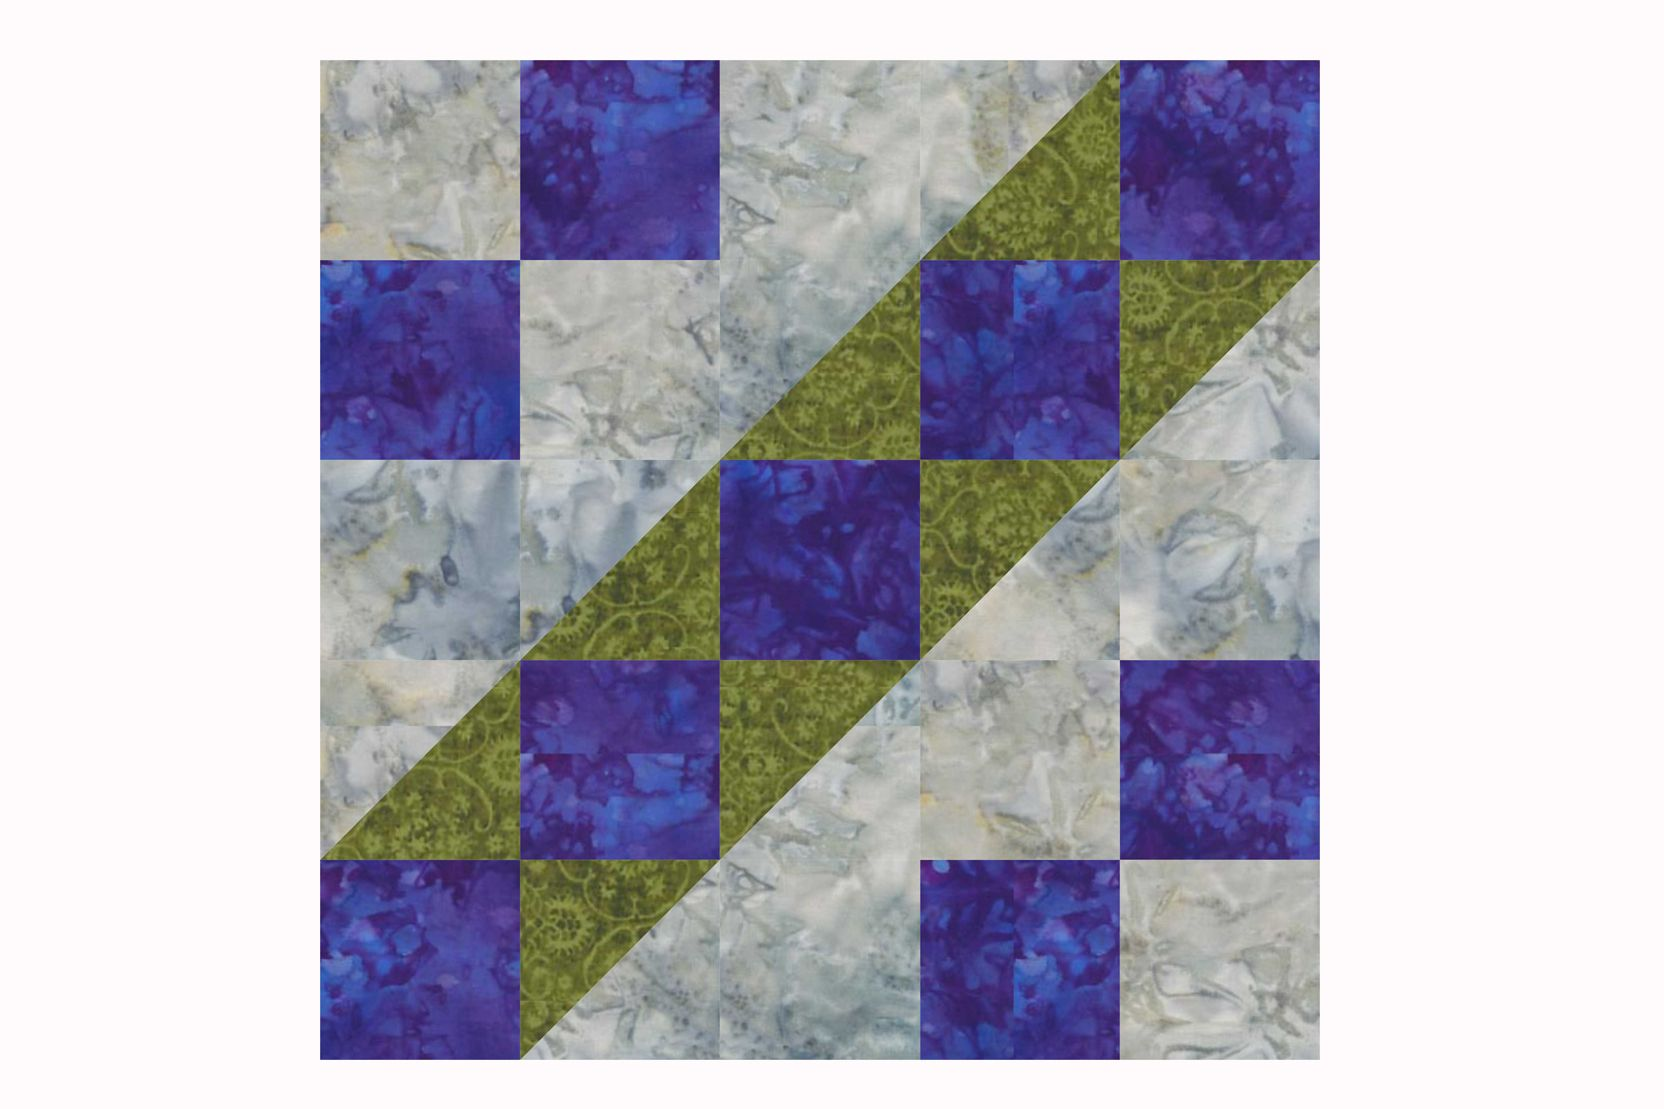 10 inch 9 patch quilt block pattern